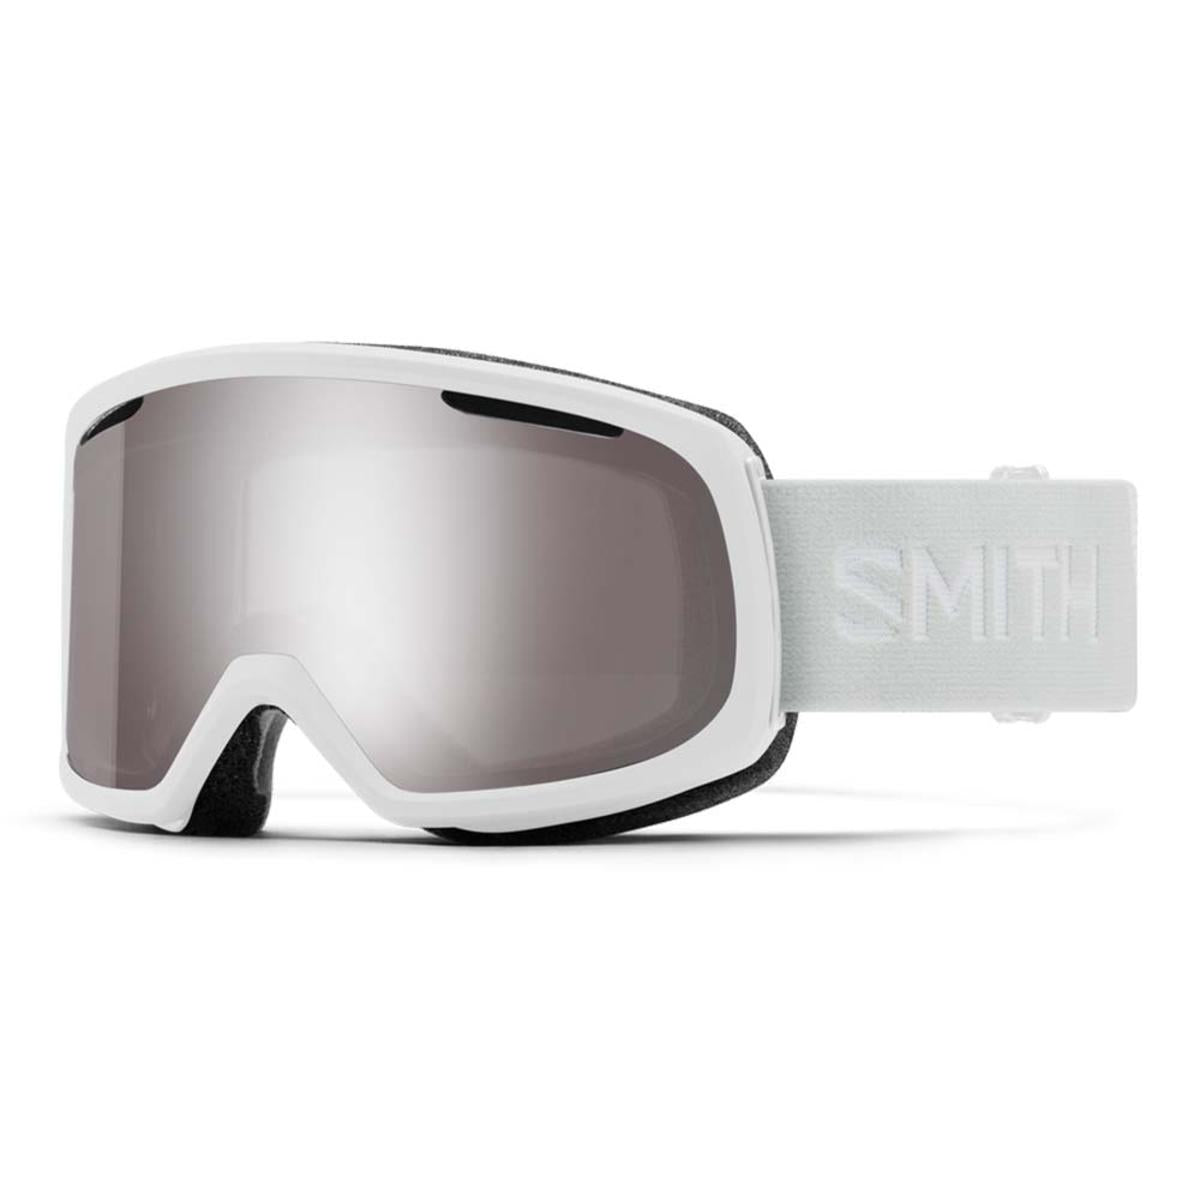 Smith Optics Riot Goggles Chromapop Sun Platinum Mirror - White Vapor Frame